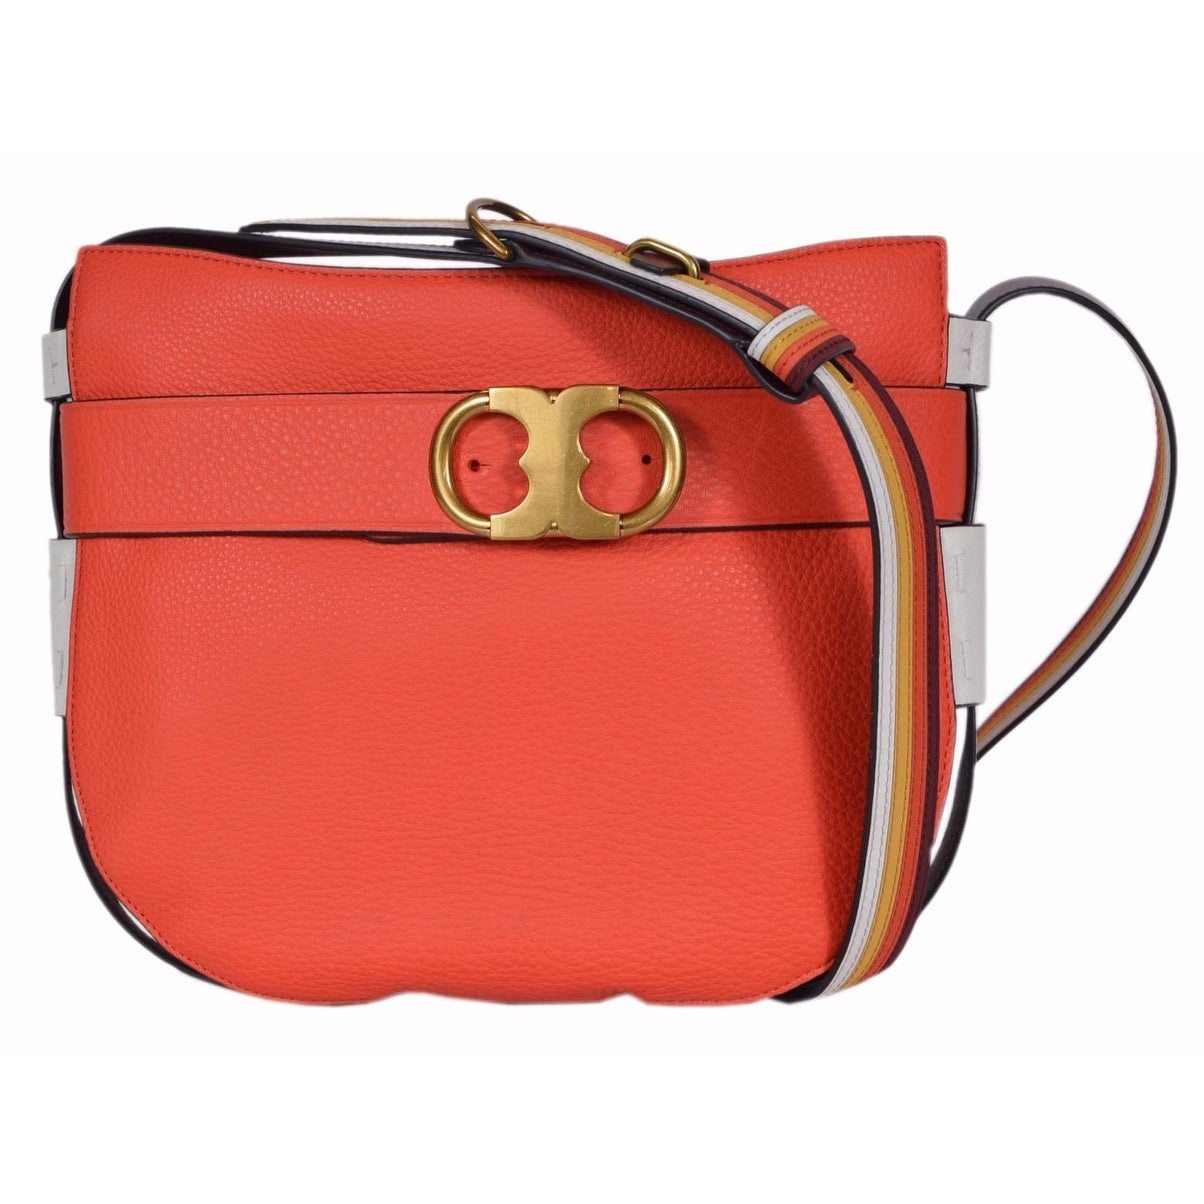 931a58de5ff Shop Tory Burch Samba Red Leather Gemini Link Crossbody Purse Bag ...